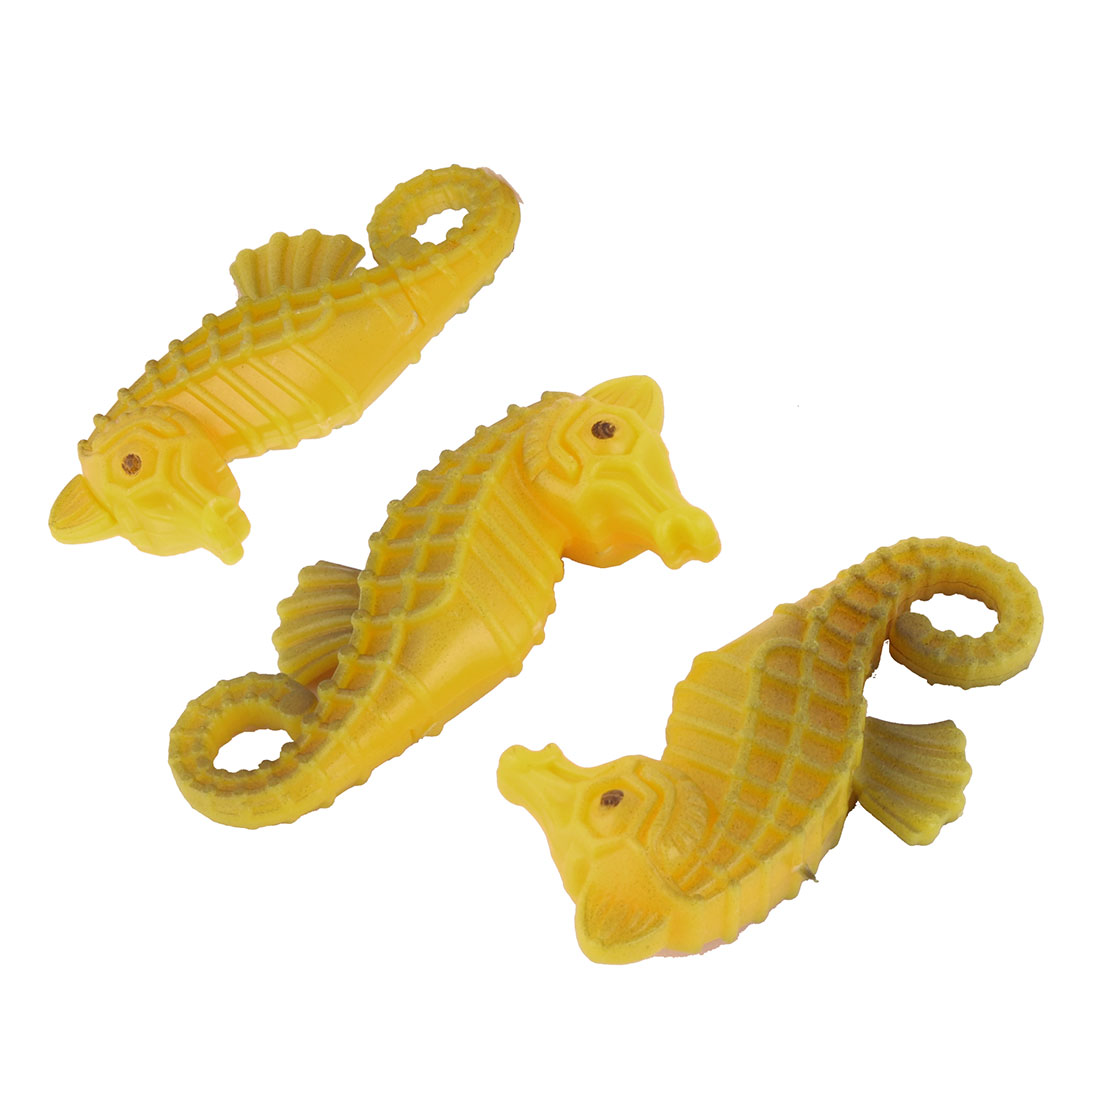 Sea Horse Aquarium Fish Tank Plastic Floating Ornament 3 PCS